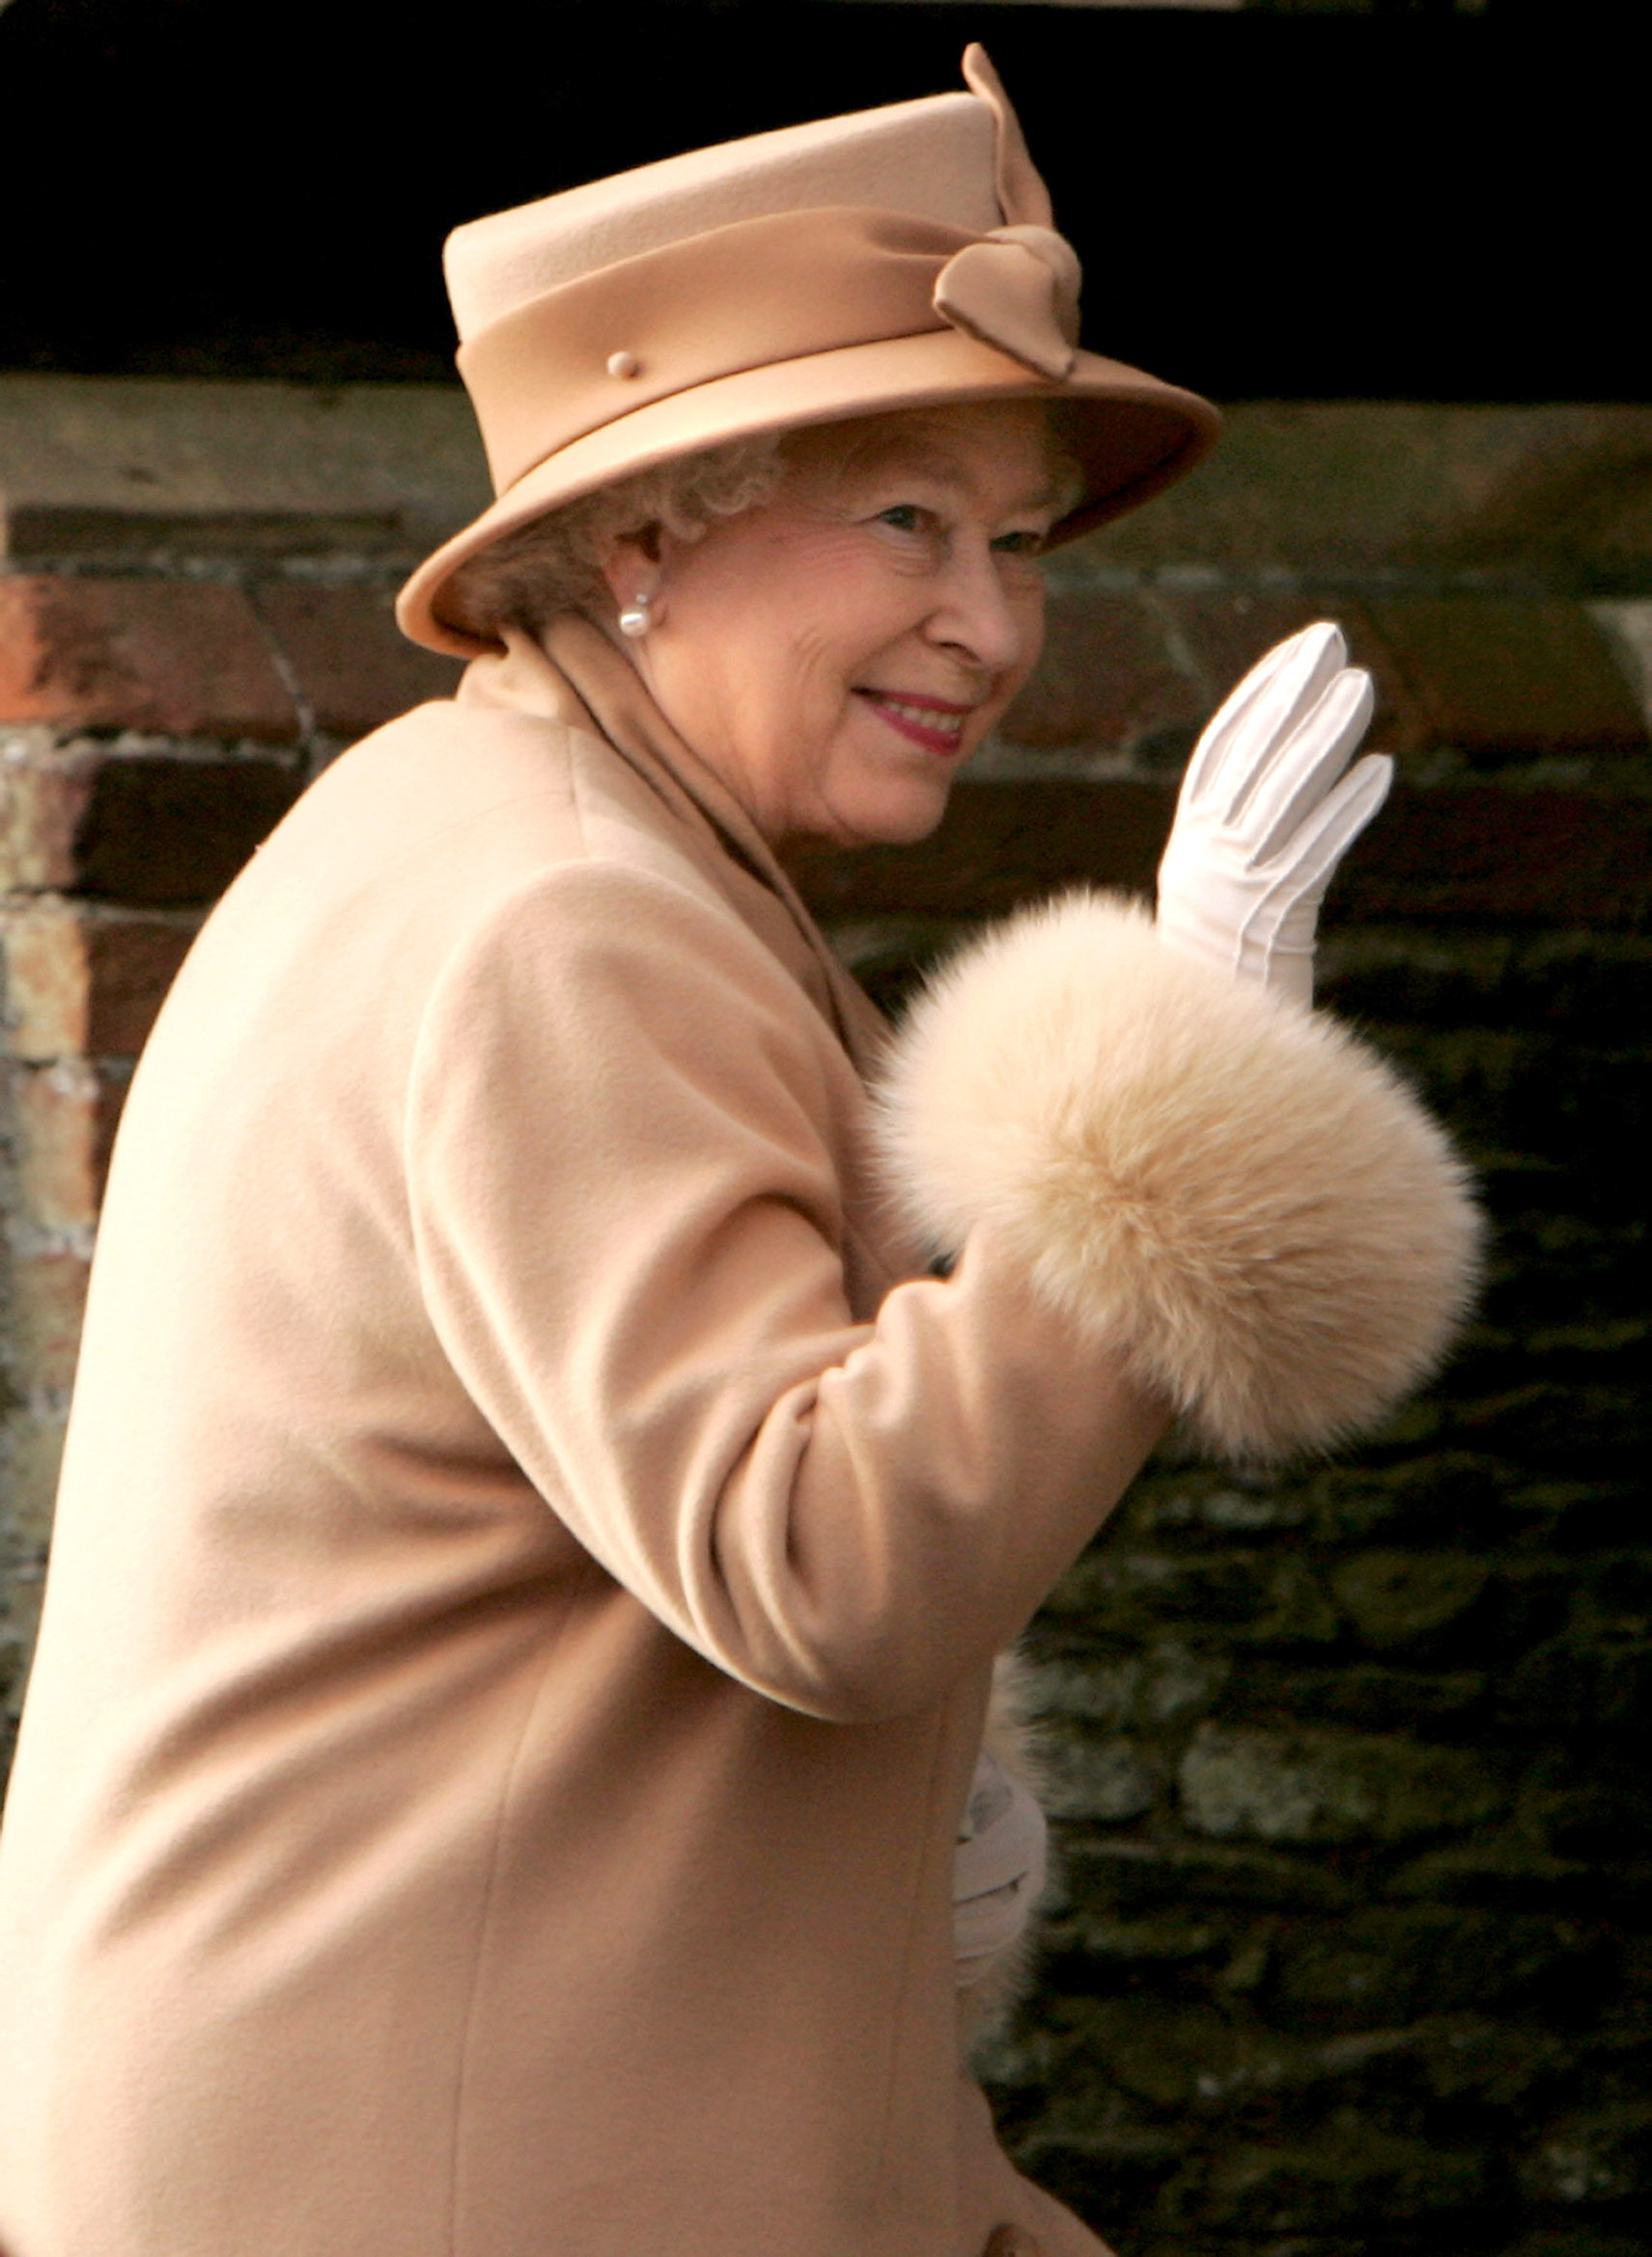 KING'S LYNN, UNITED KINGDOM - DECEMBER 25:  HRH Queen Elizabeth II waves to onlookers as she arrives at the Christmas Day service at Sandringham Church on December 25, 2005 in King's Lynn, England. (Photo by Daniel Berehulak/Getty Images)